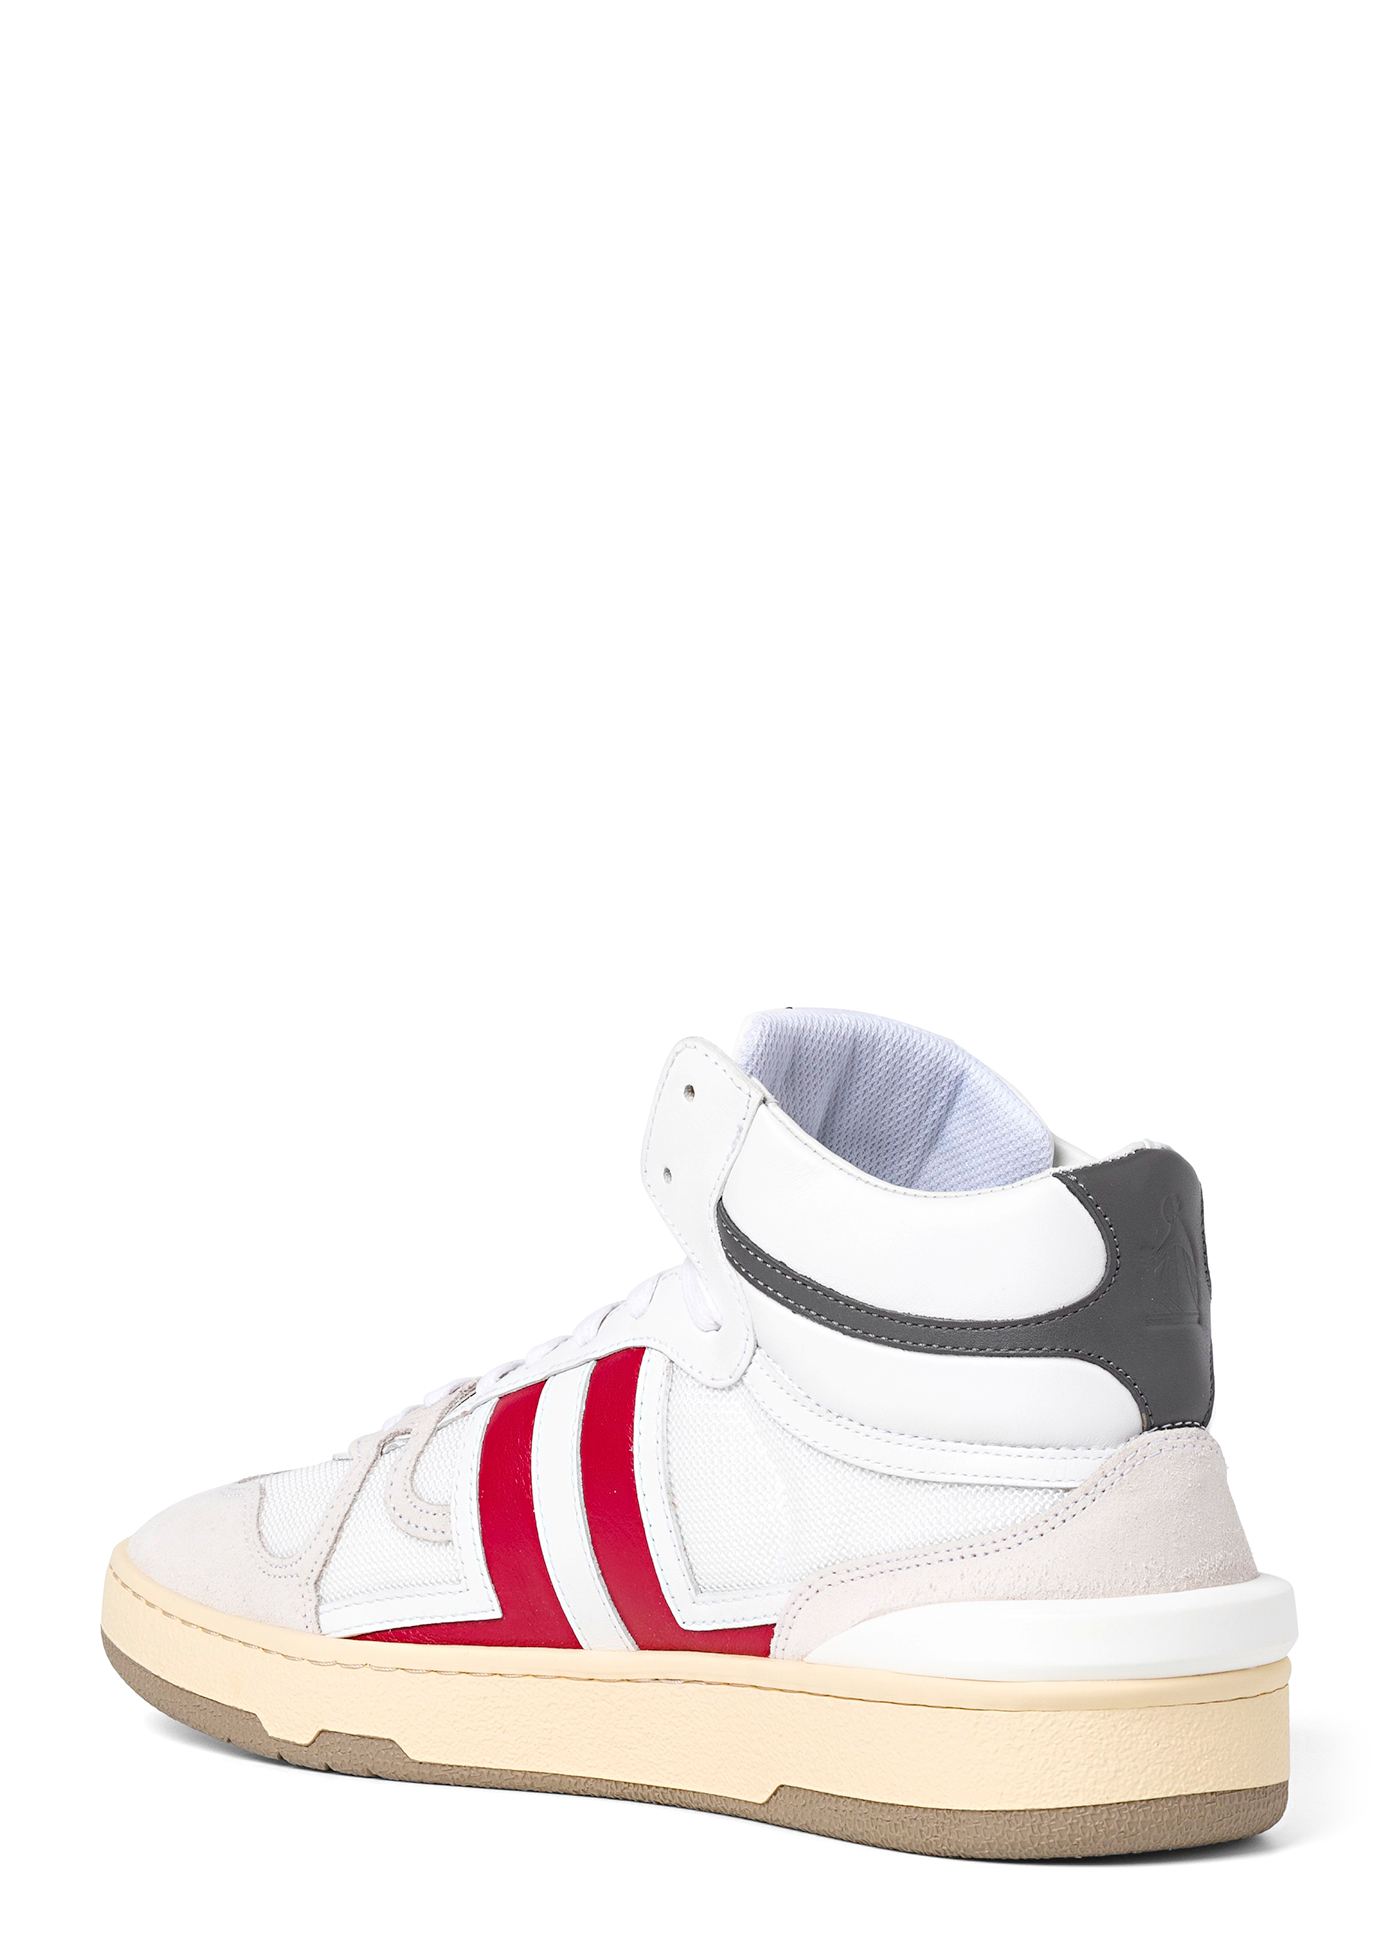 CLAY HIGH TOP SNEAKERS image number 2